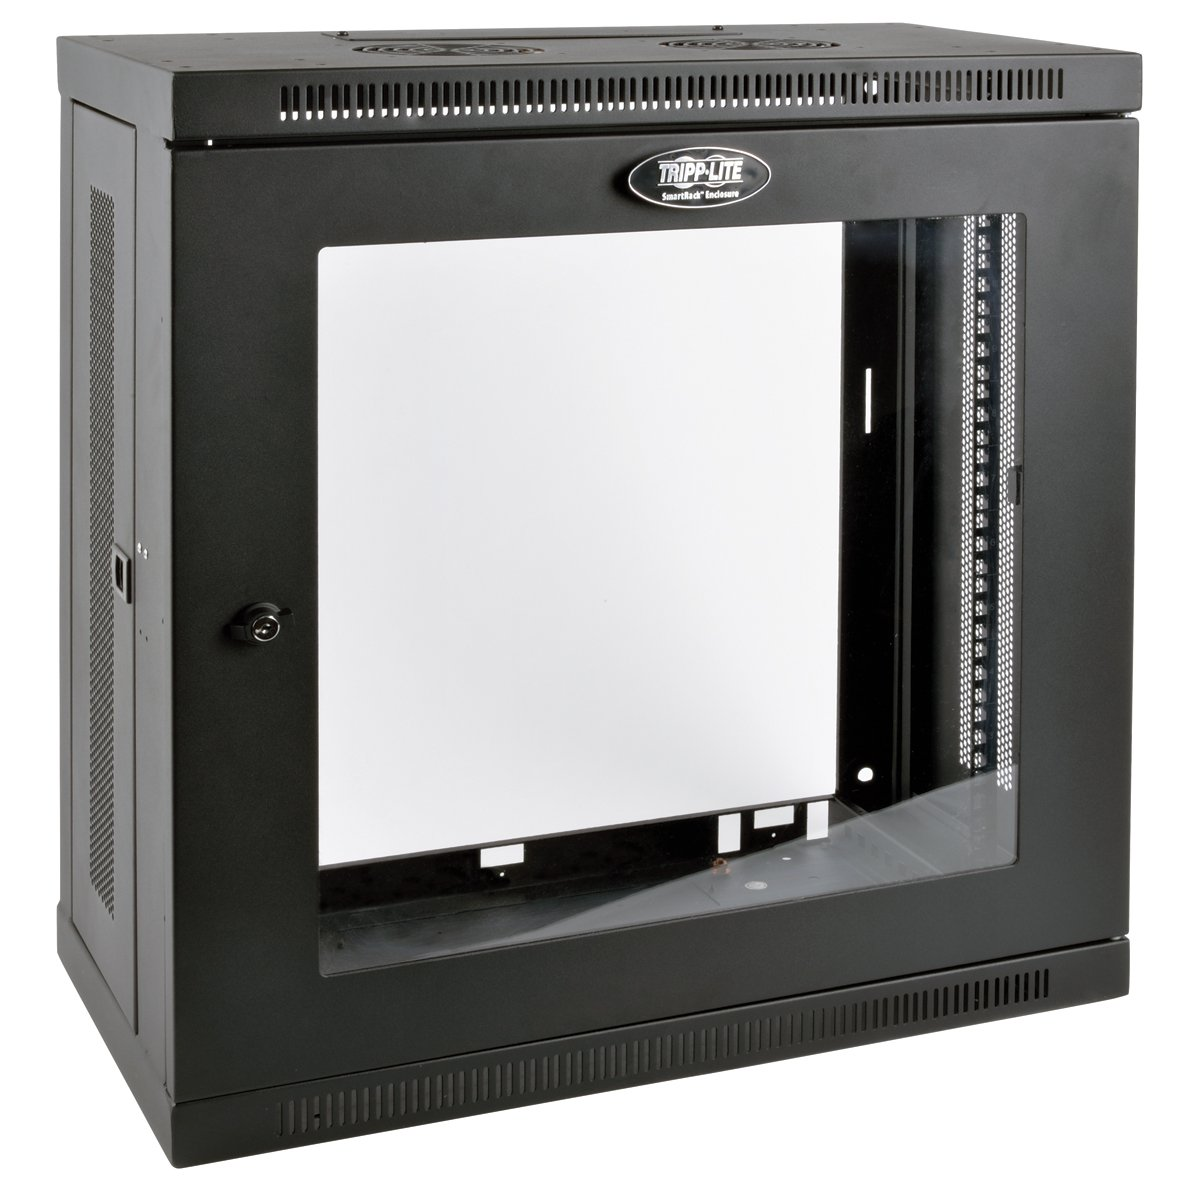 SmartRack 12RU Low-Profile Patch-Depth Wall-Mount Rack Enclosure Cabinet with Clear Acrylic Window